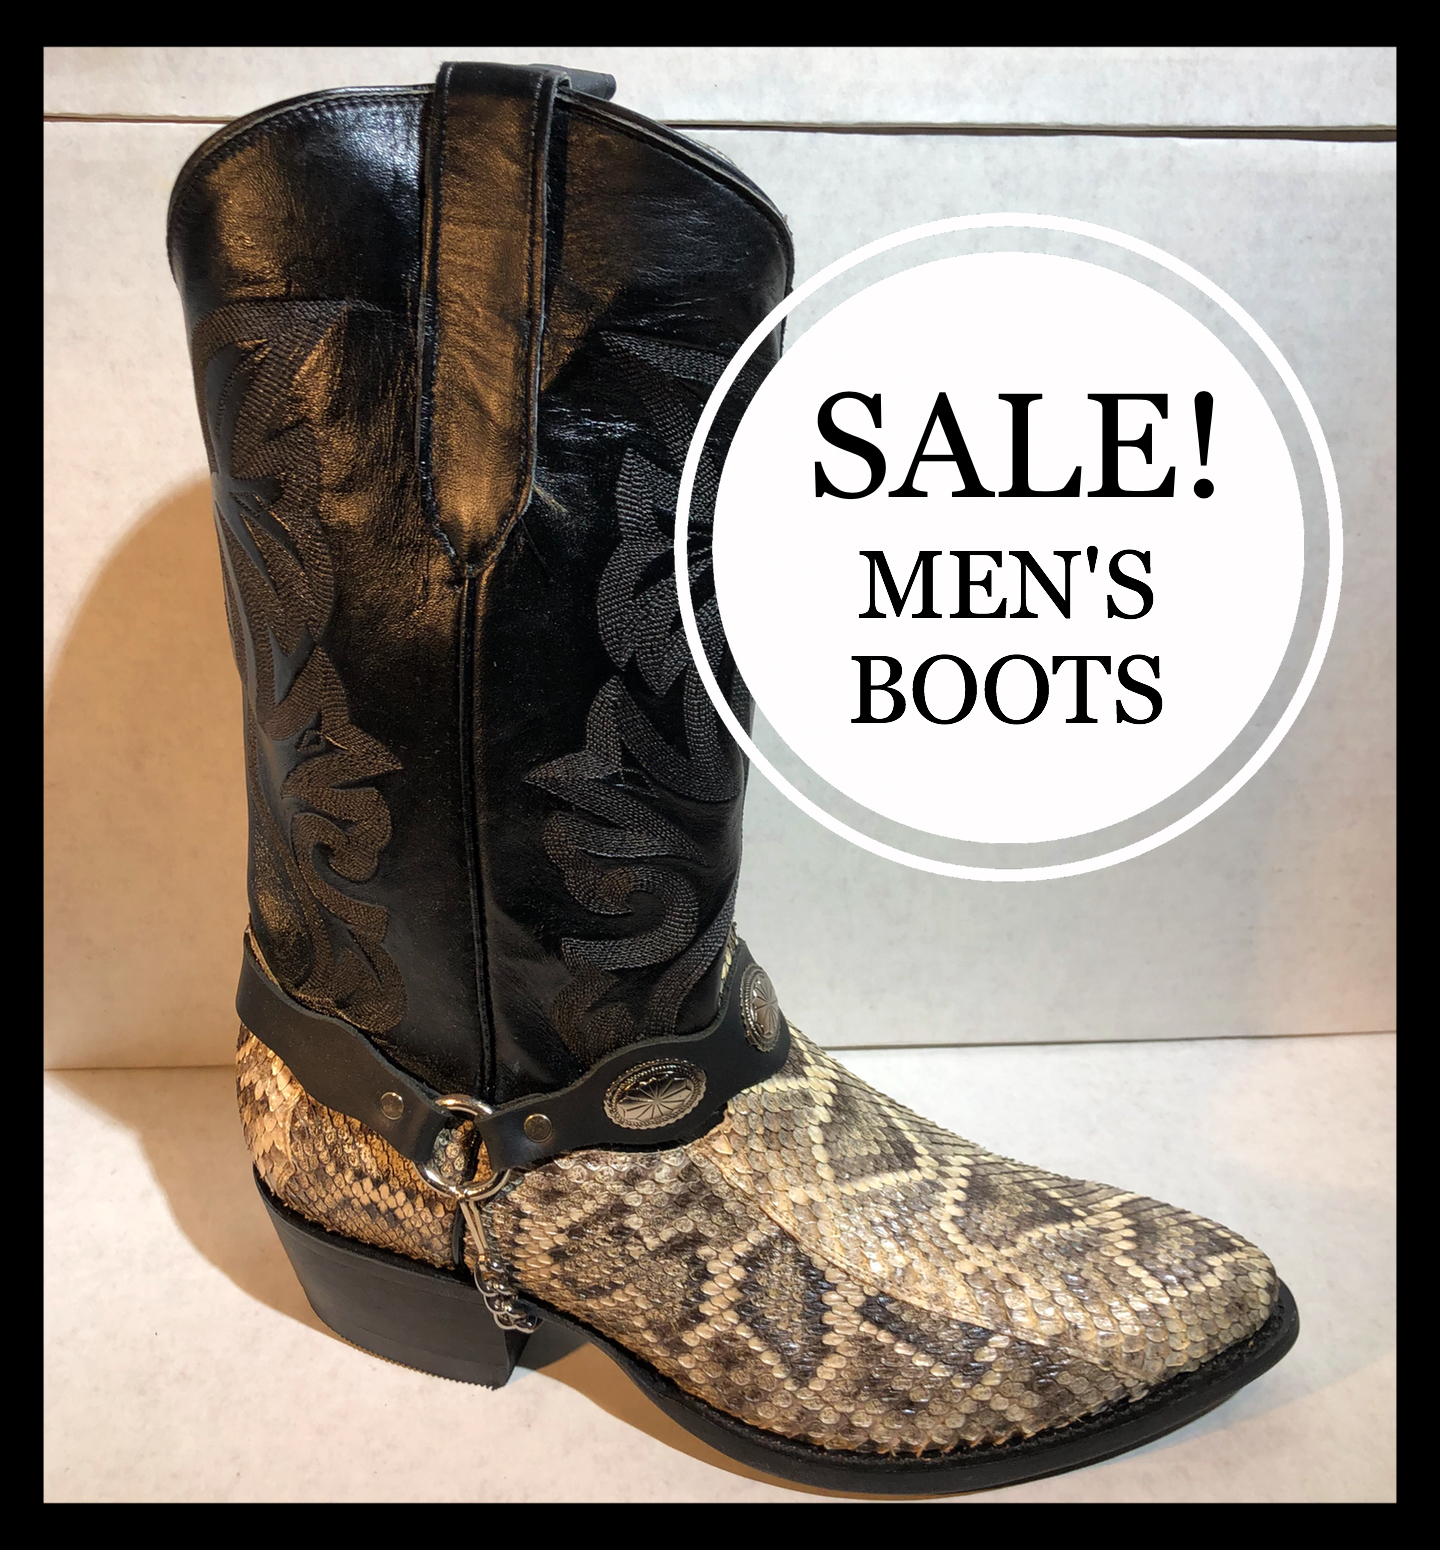 FINEBOOTS.COM HAND MADE BY FRIEDSON BROS. IN THE USA!